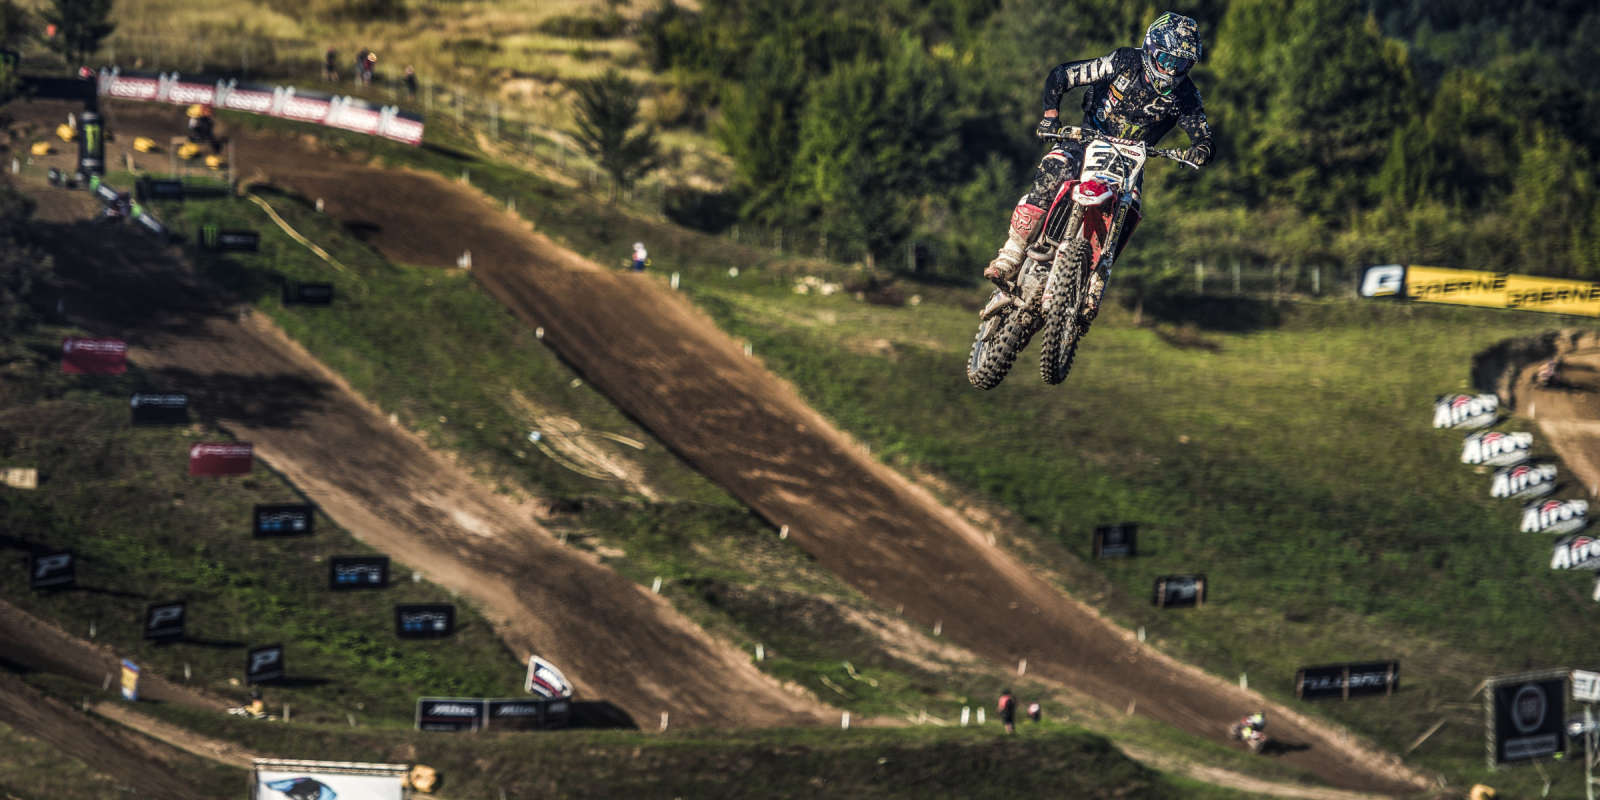 Panos Kouzis riding in Greece